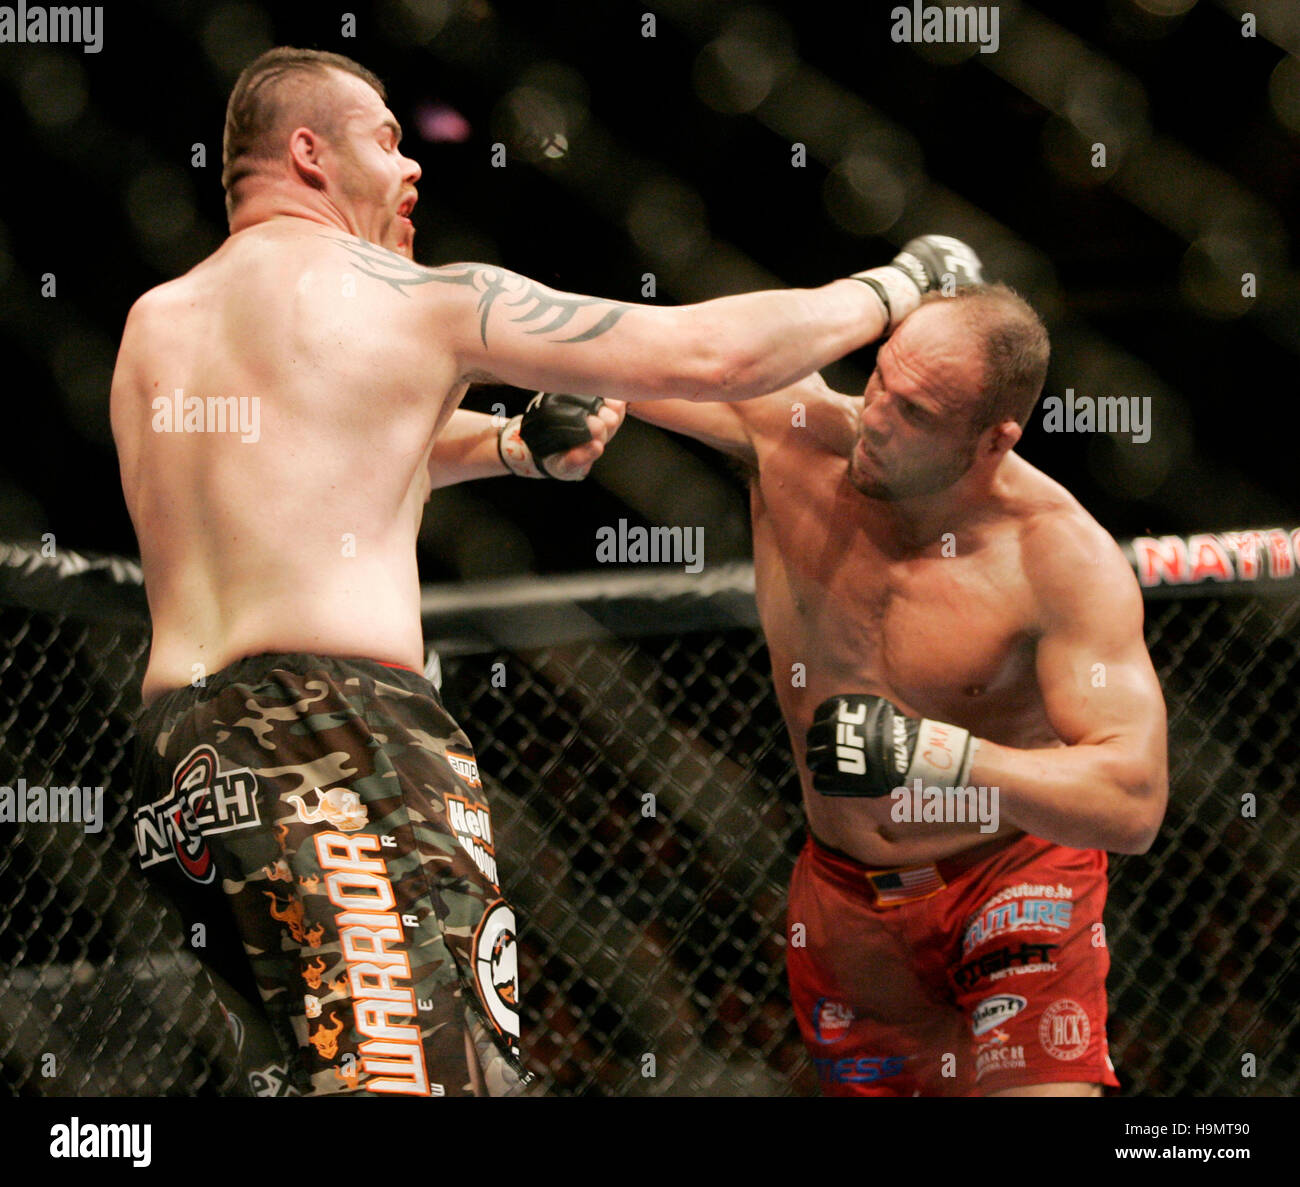 Randy Couture, right, fights Tim Sylvia during Ultimate Fighting Championship UFC 68 at the Nationwide Arena in Stock Photo